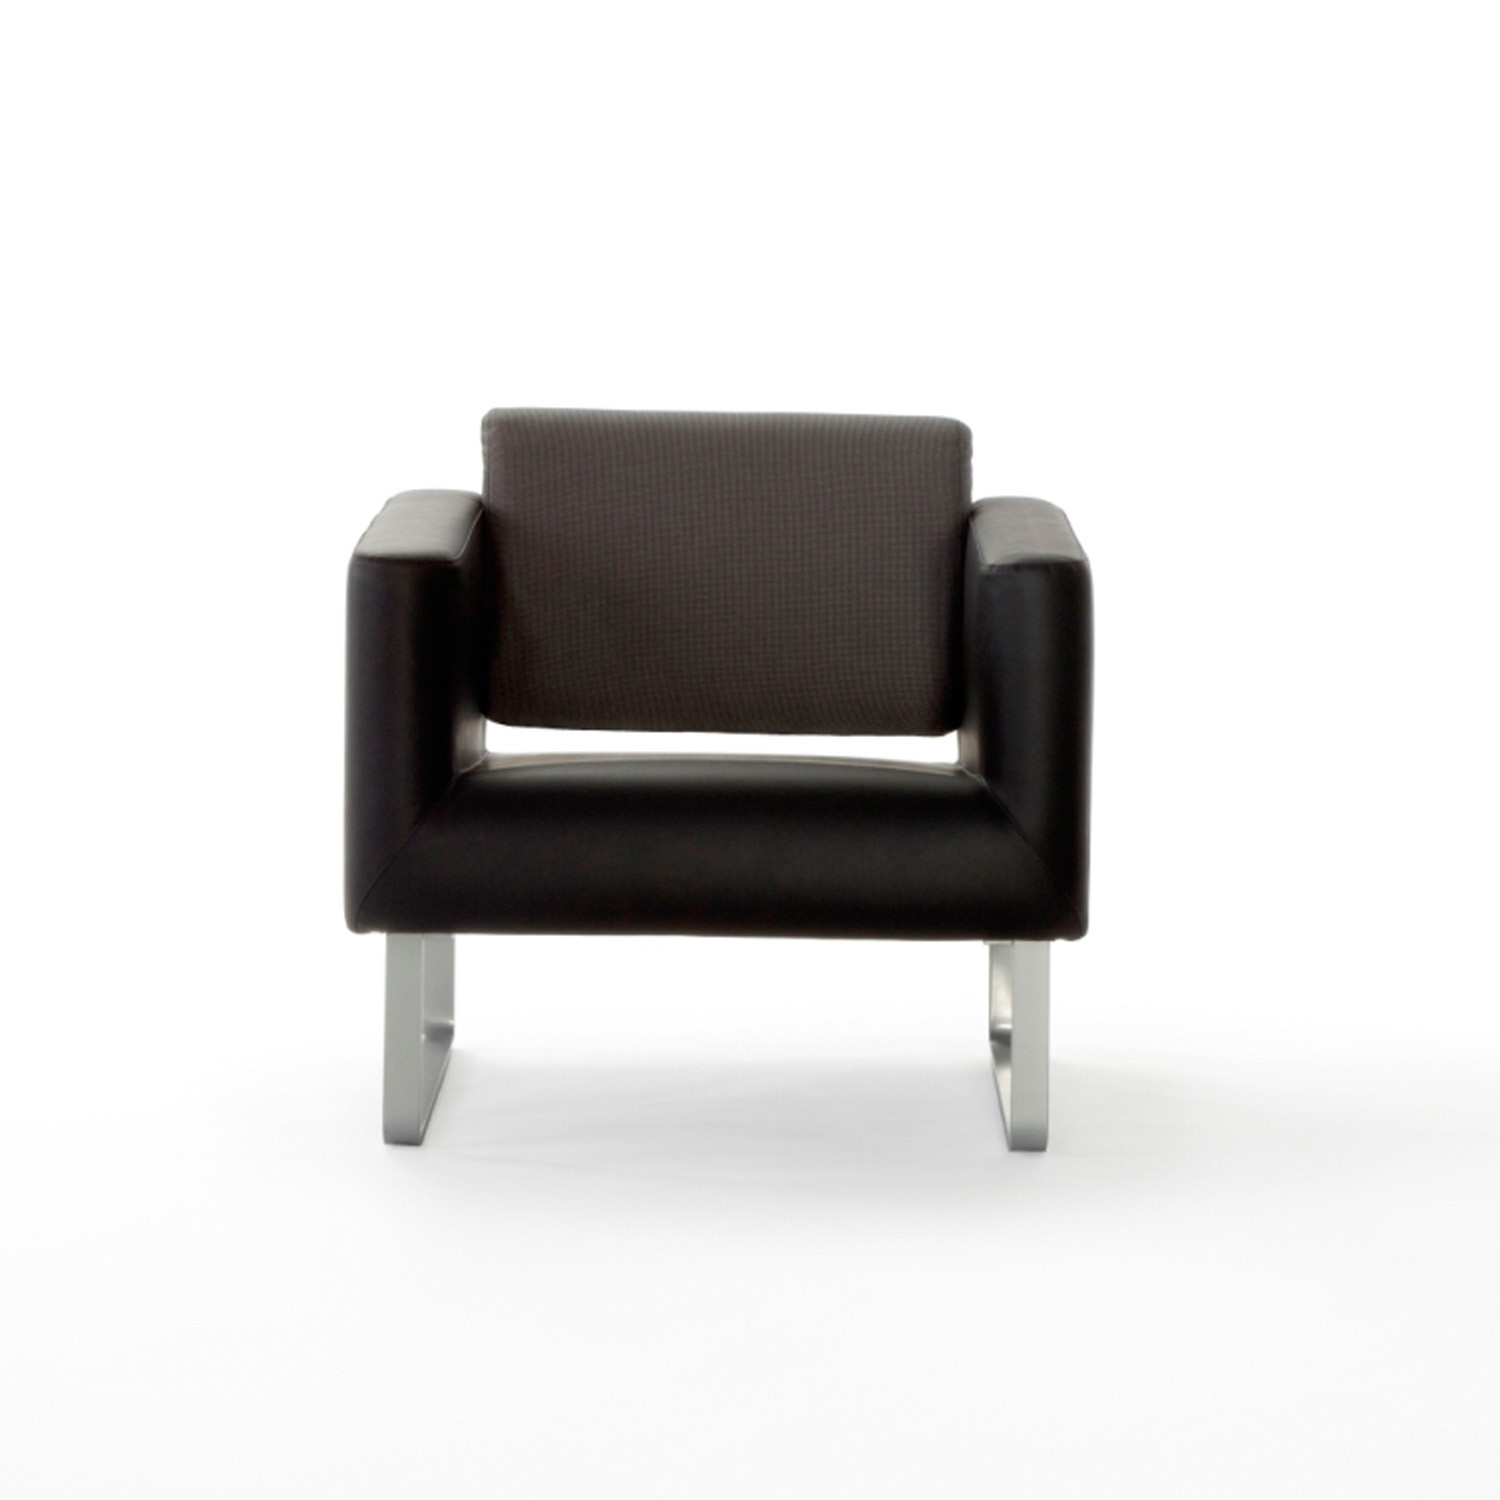 Connection Orbis Reception Armchair